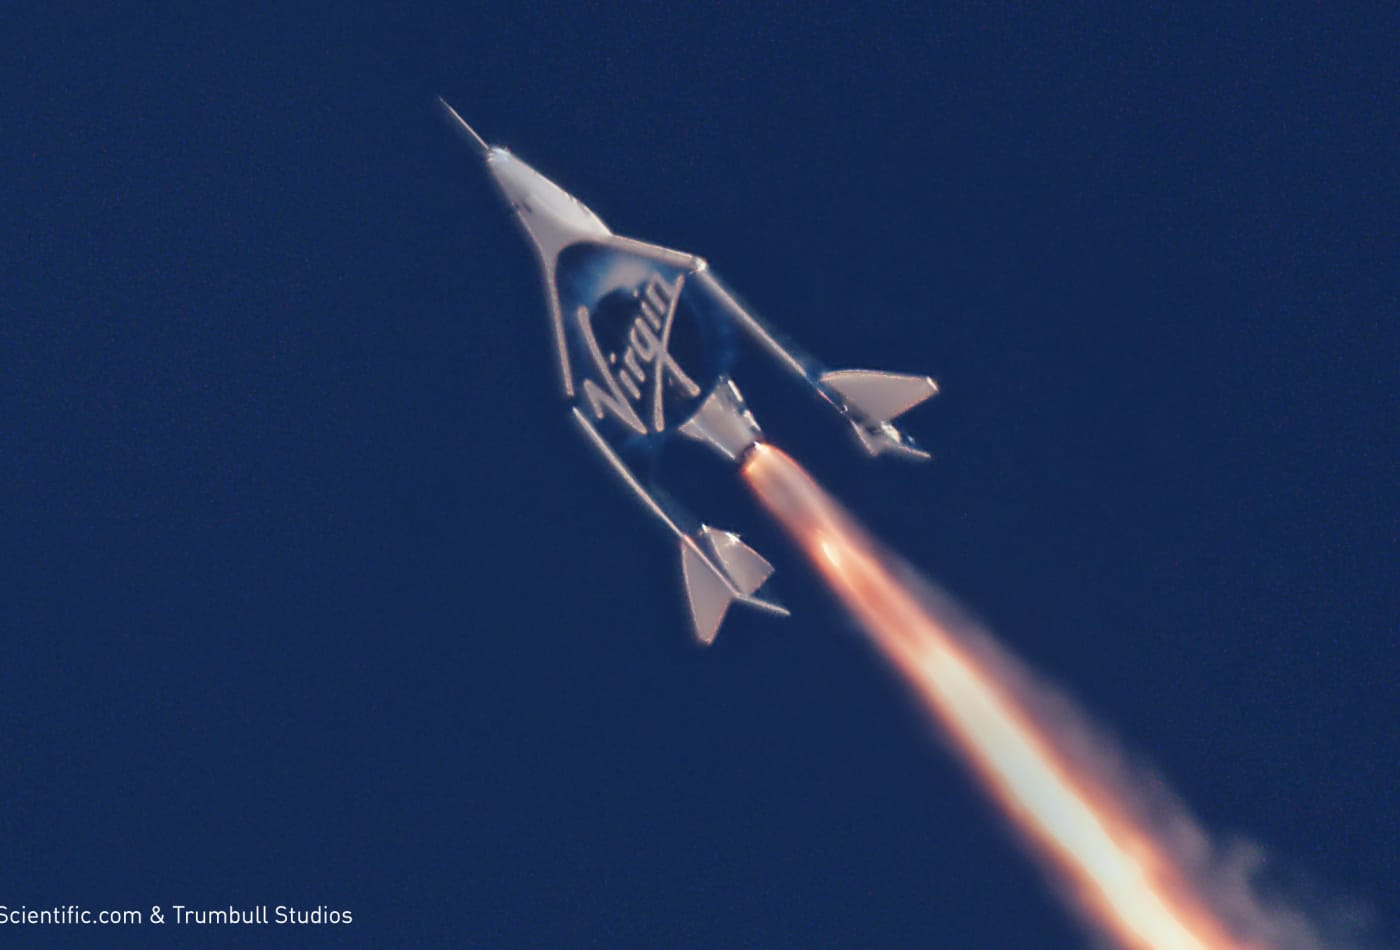 An investor's guide to space, Wall Street's next trillion-dollar industry